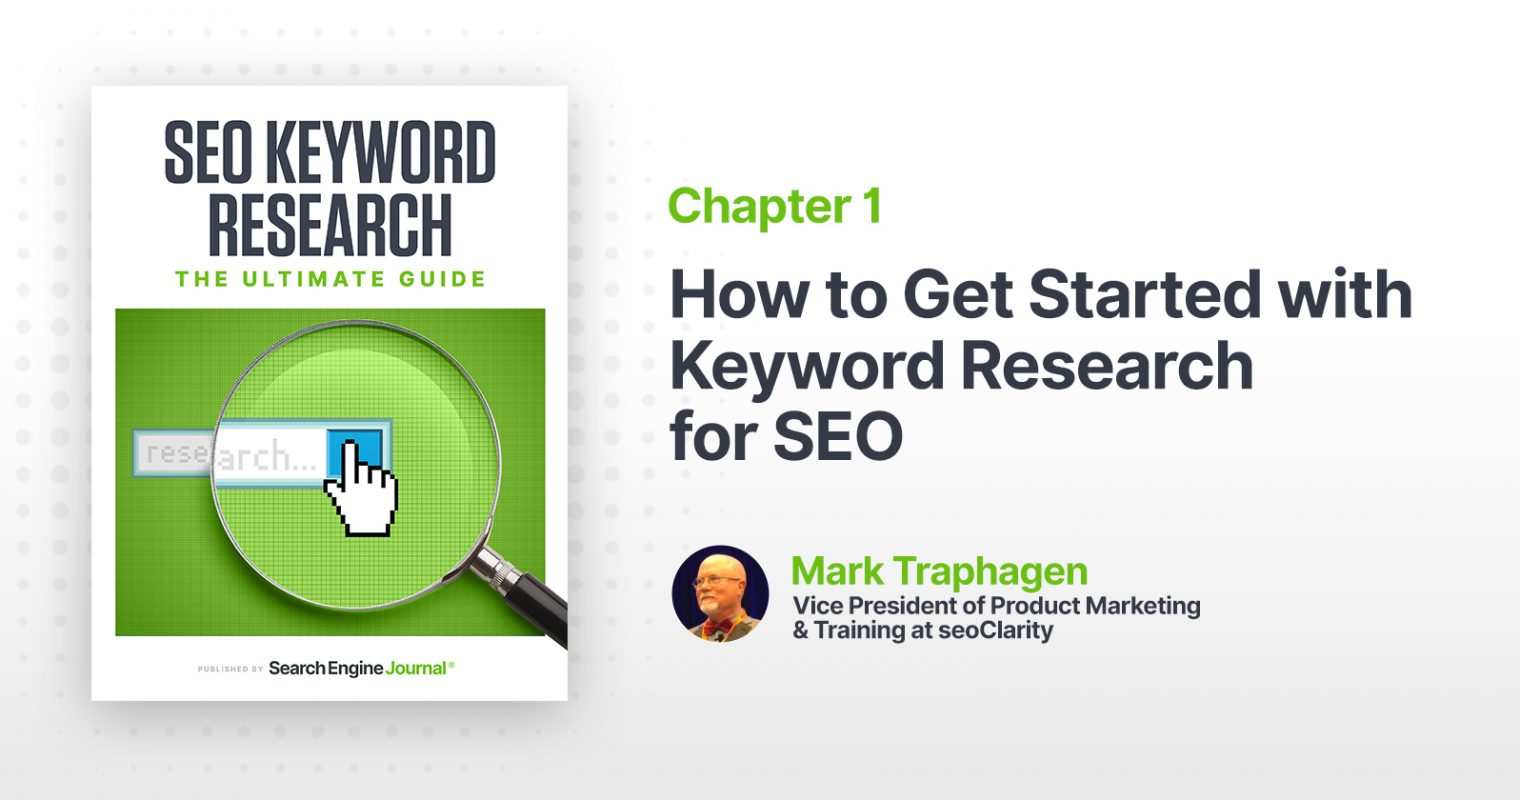 How to Get Started With Keyword Research for SEO